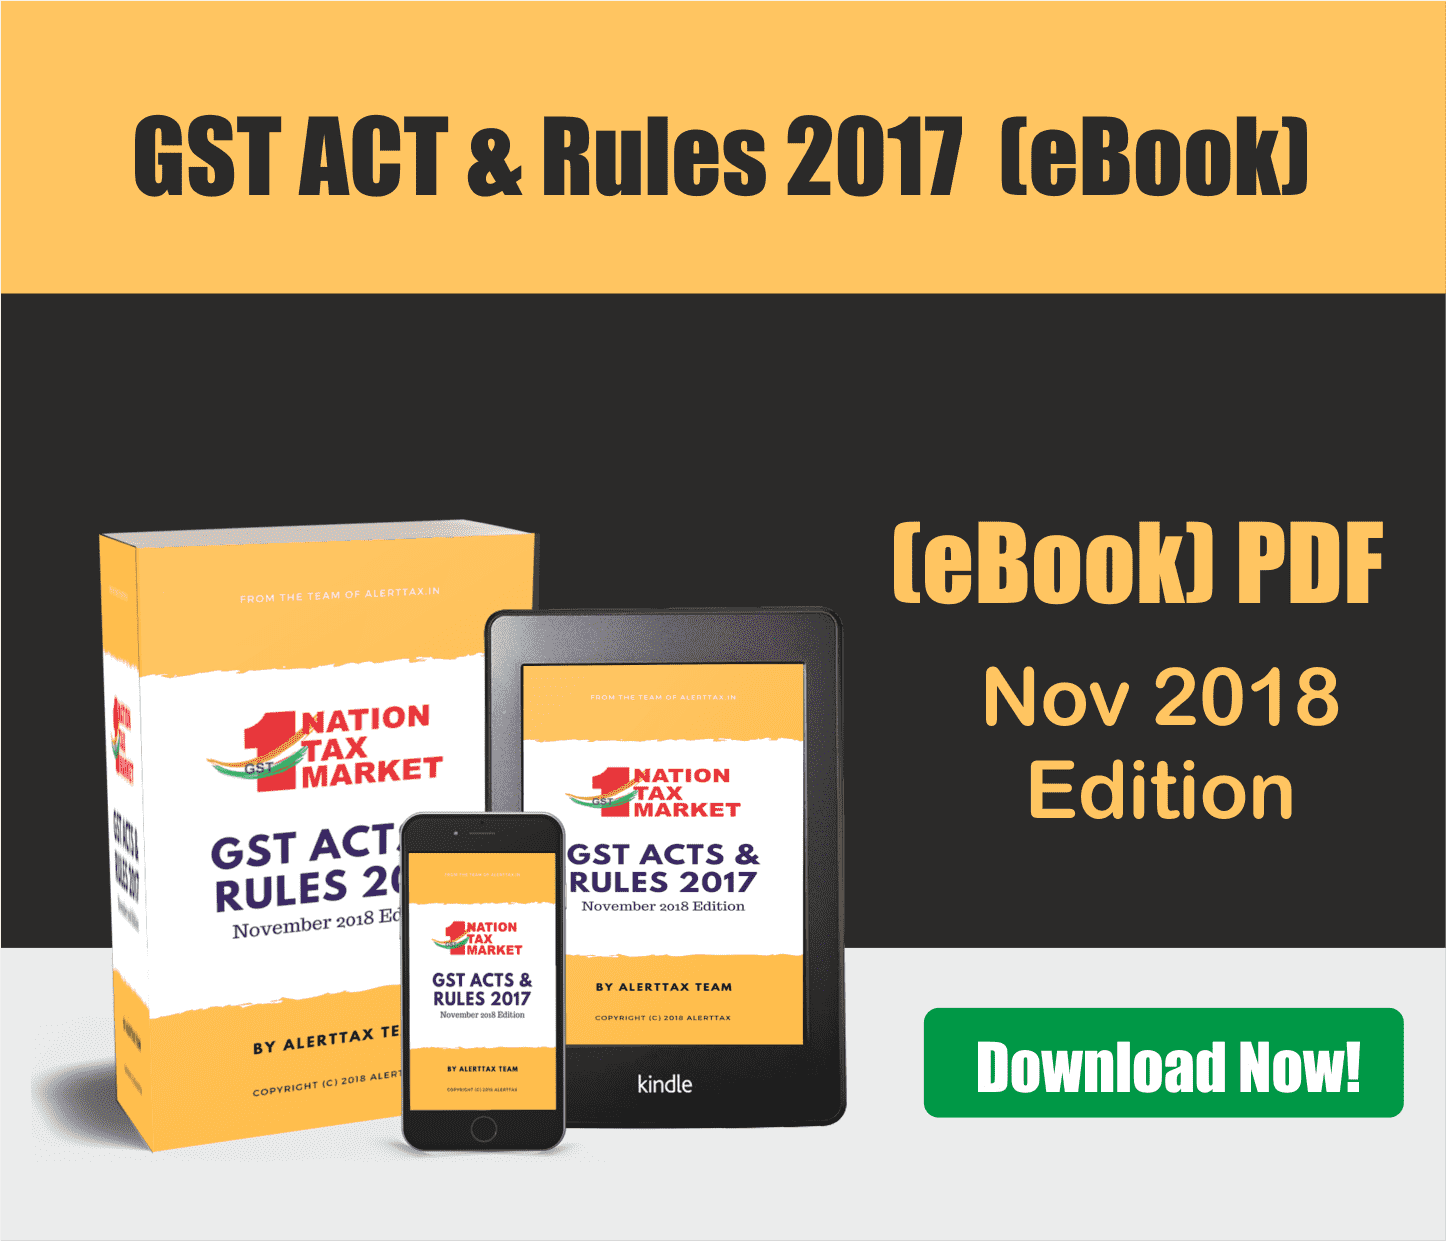 gst act & rules ebook